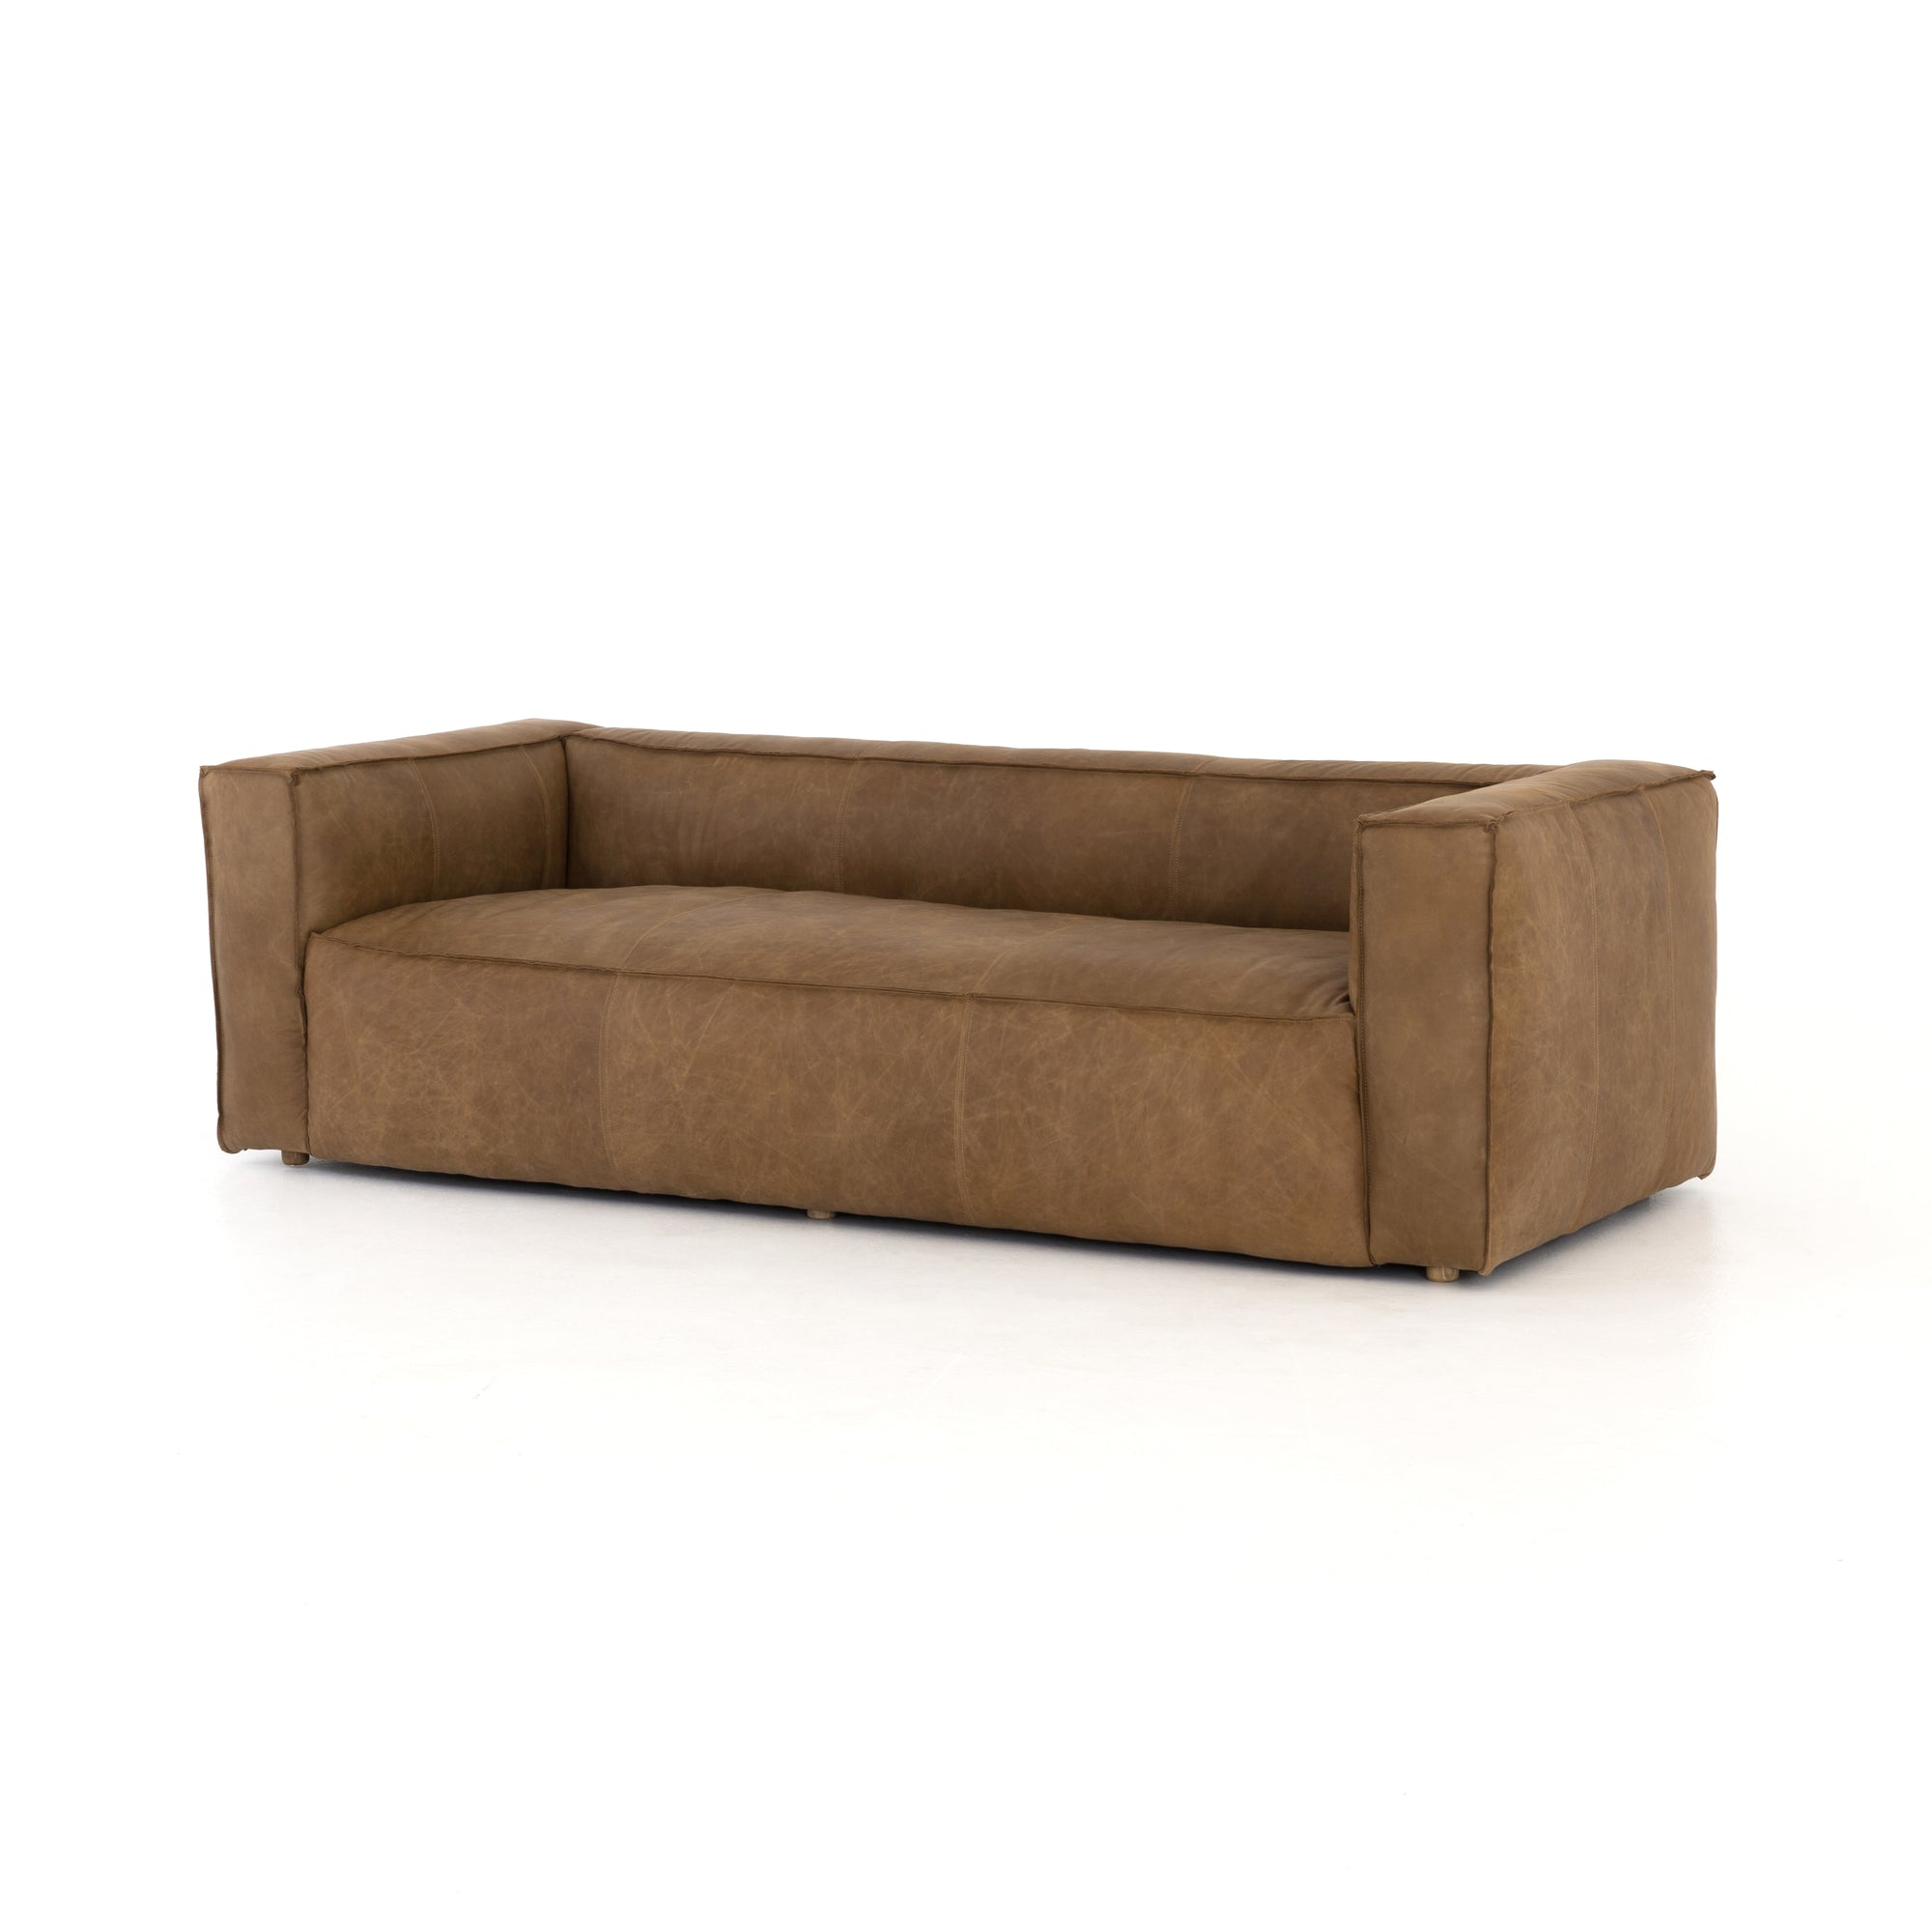 "Nolita Reverse Stitch Sofa - 99"" - Nat Wash"